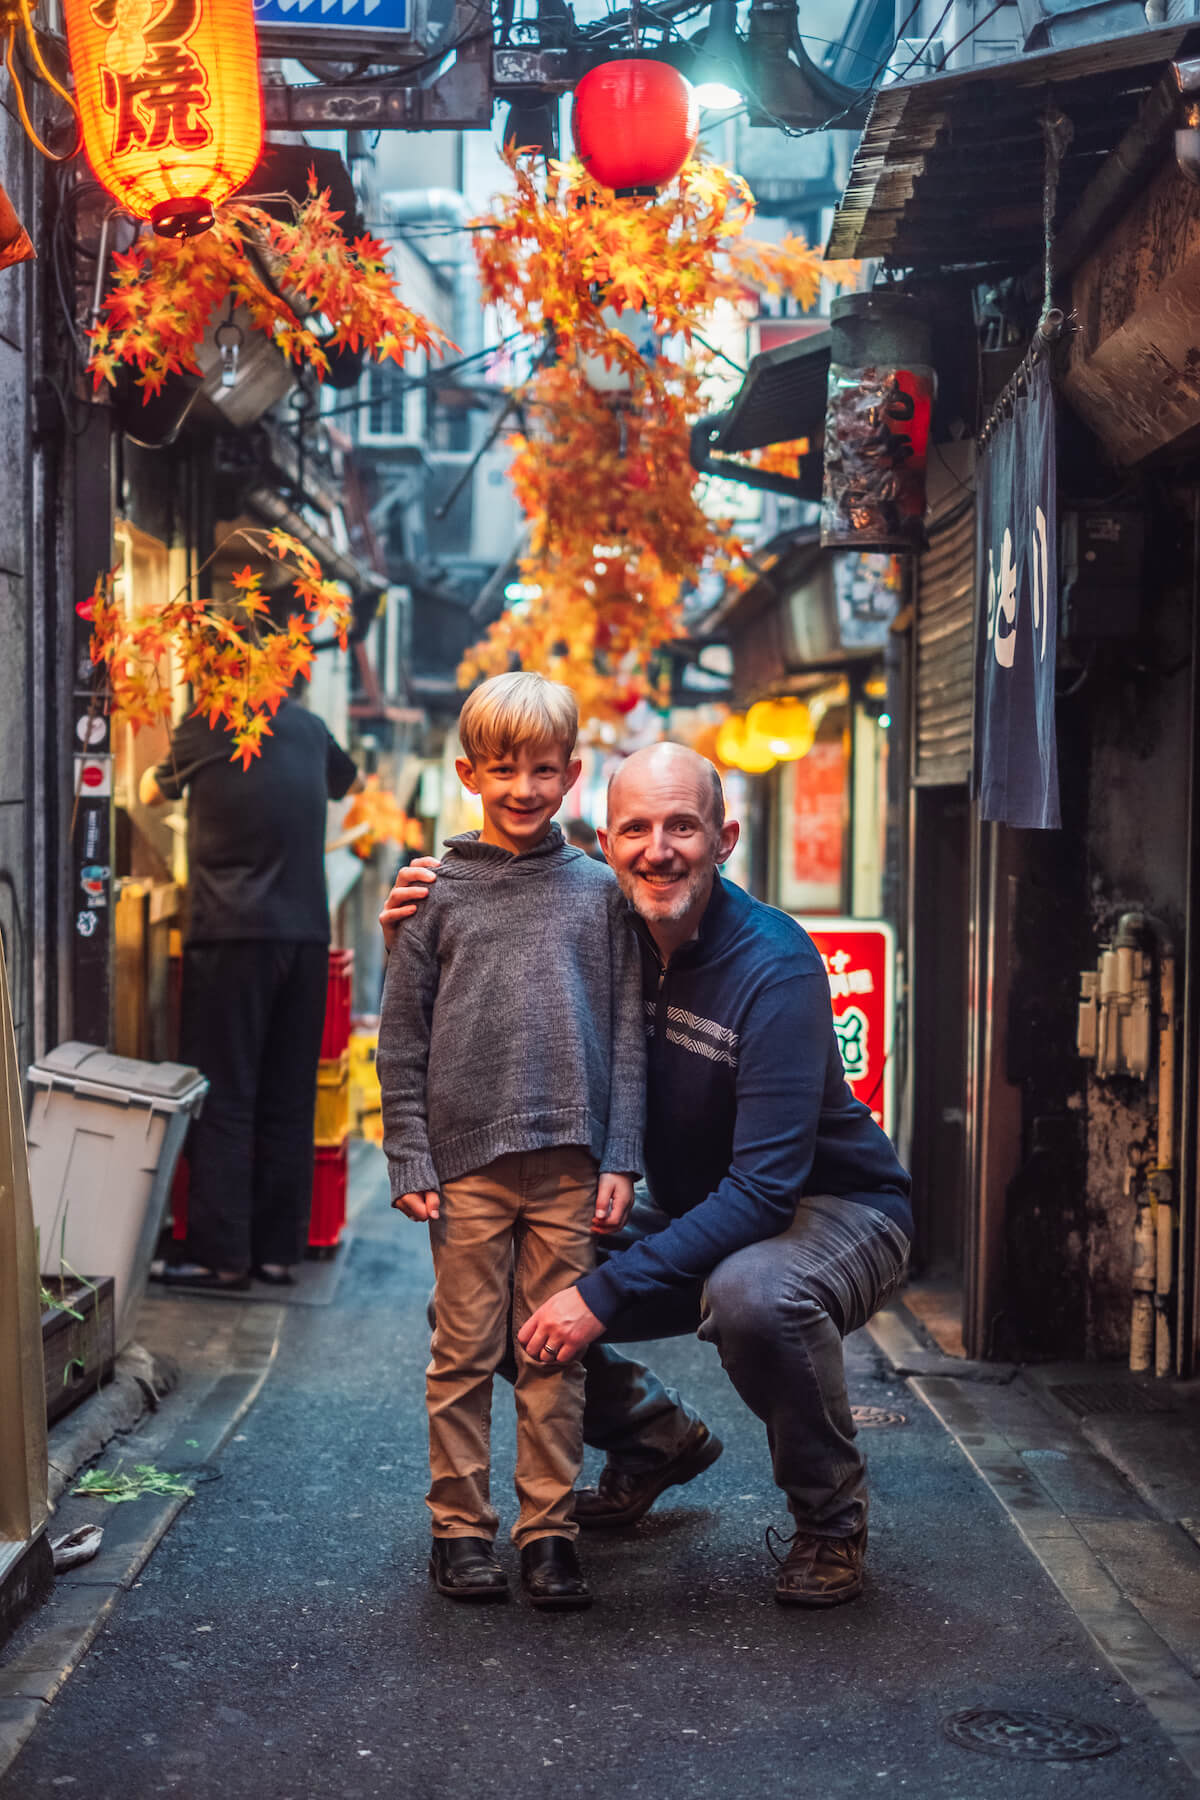 Son and Dad in an ally in Tokyo Japan